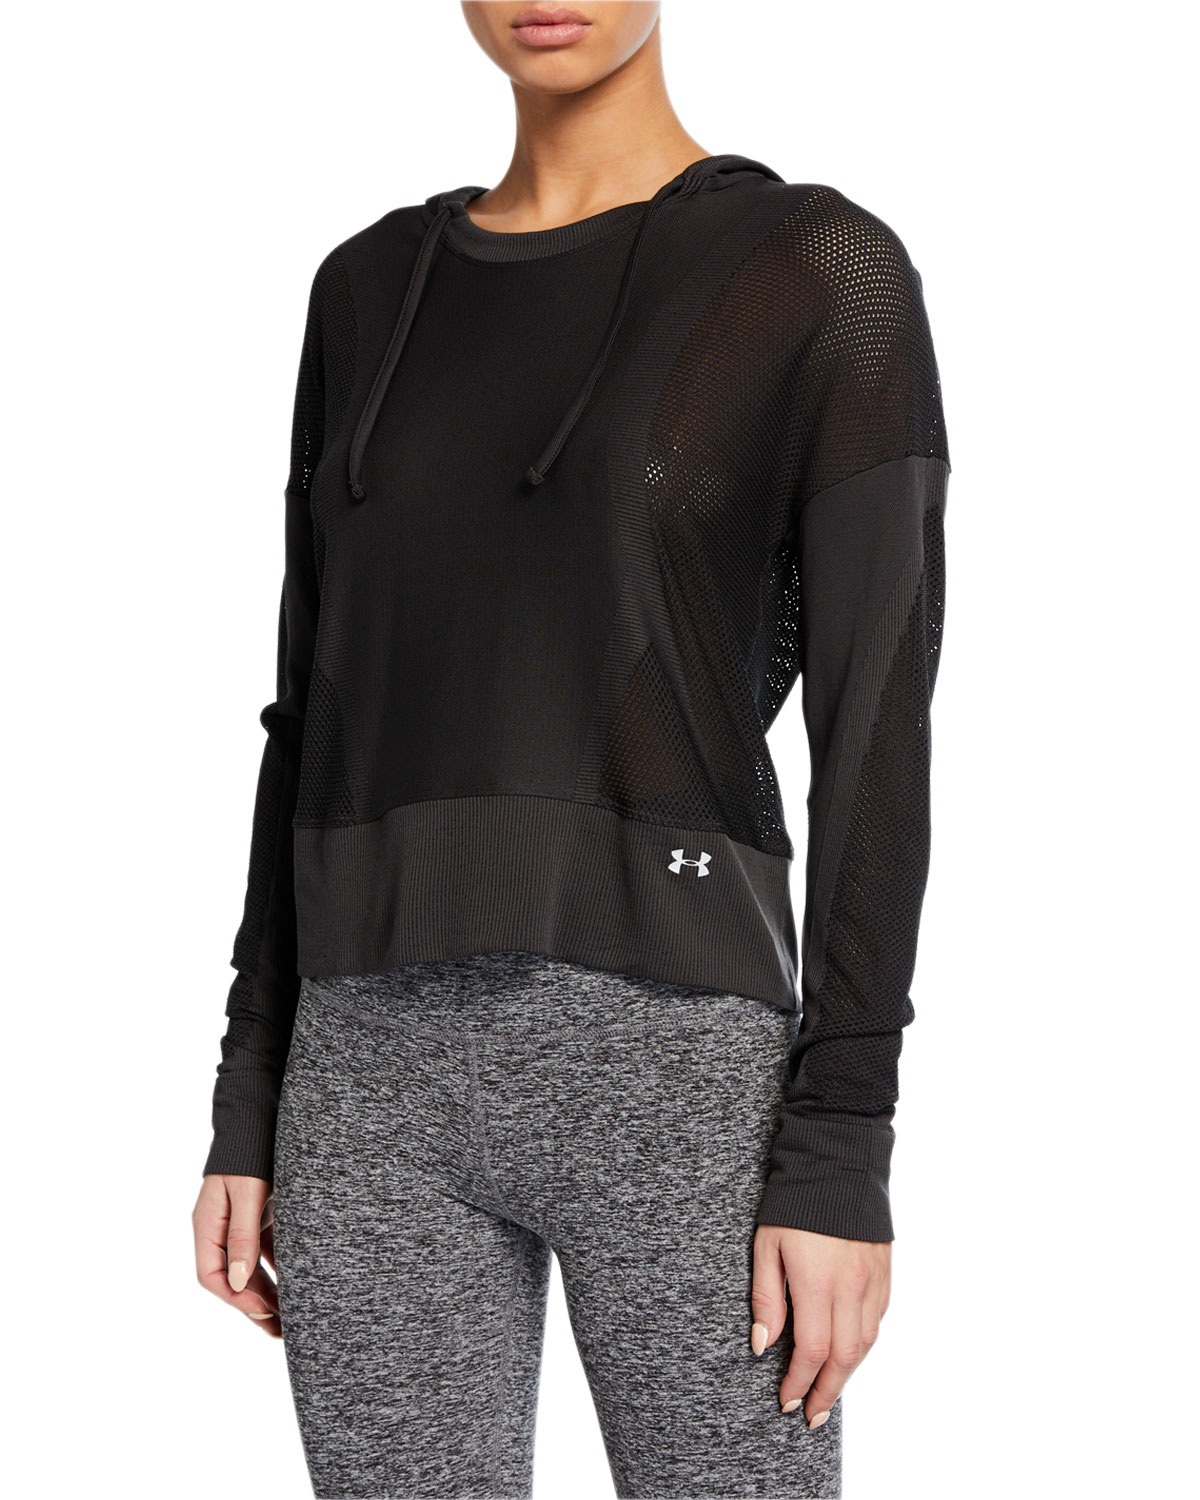 Under Armour Tops MOVE LIGHT CROPPED MESH PULLOVER HOODIE